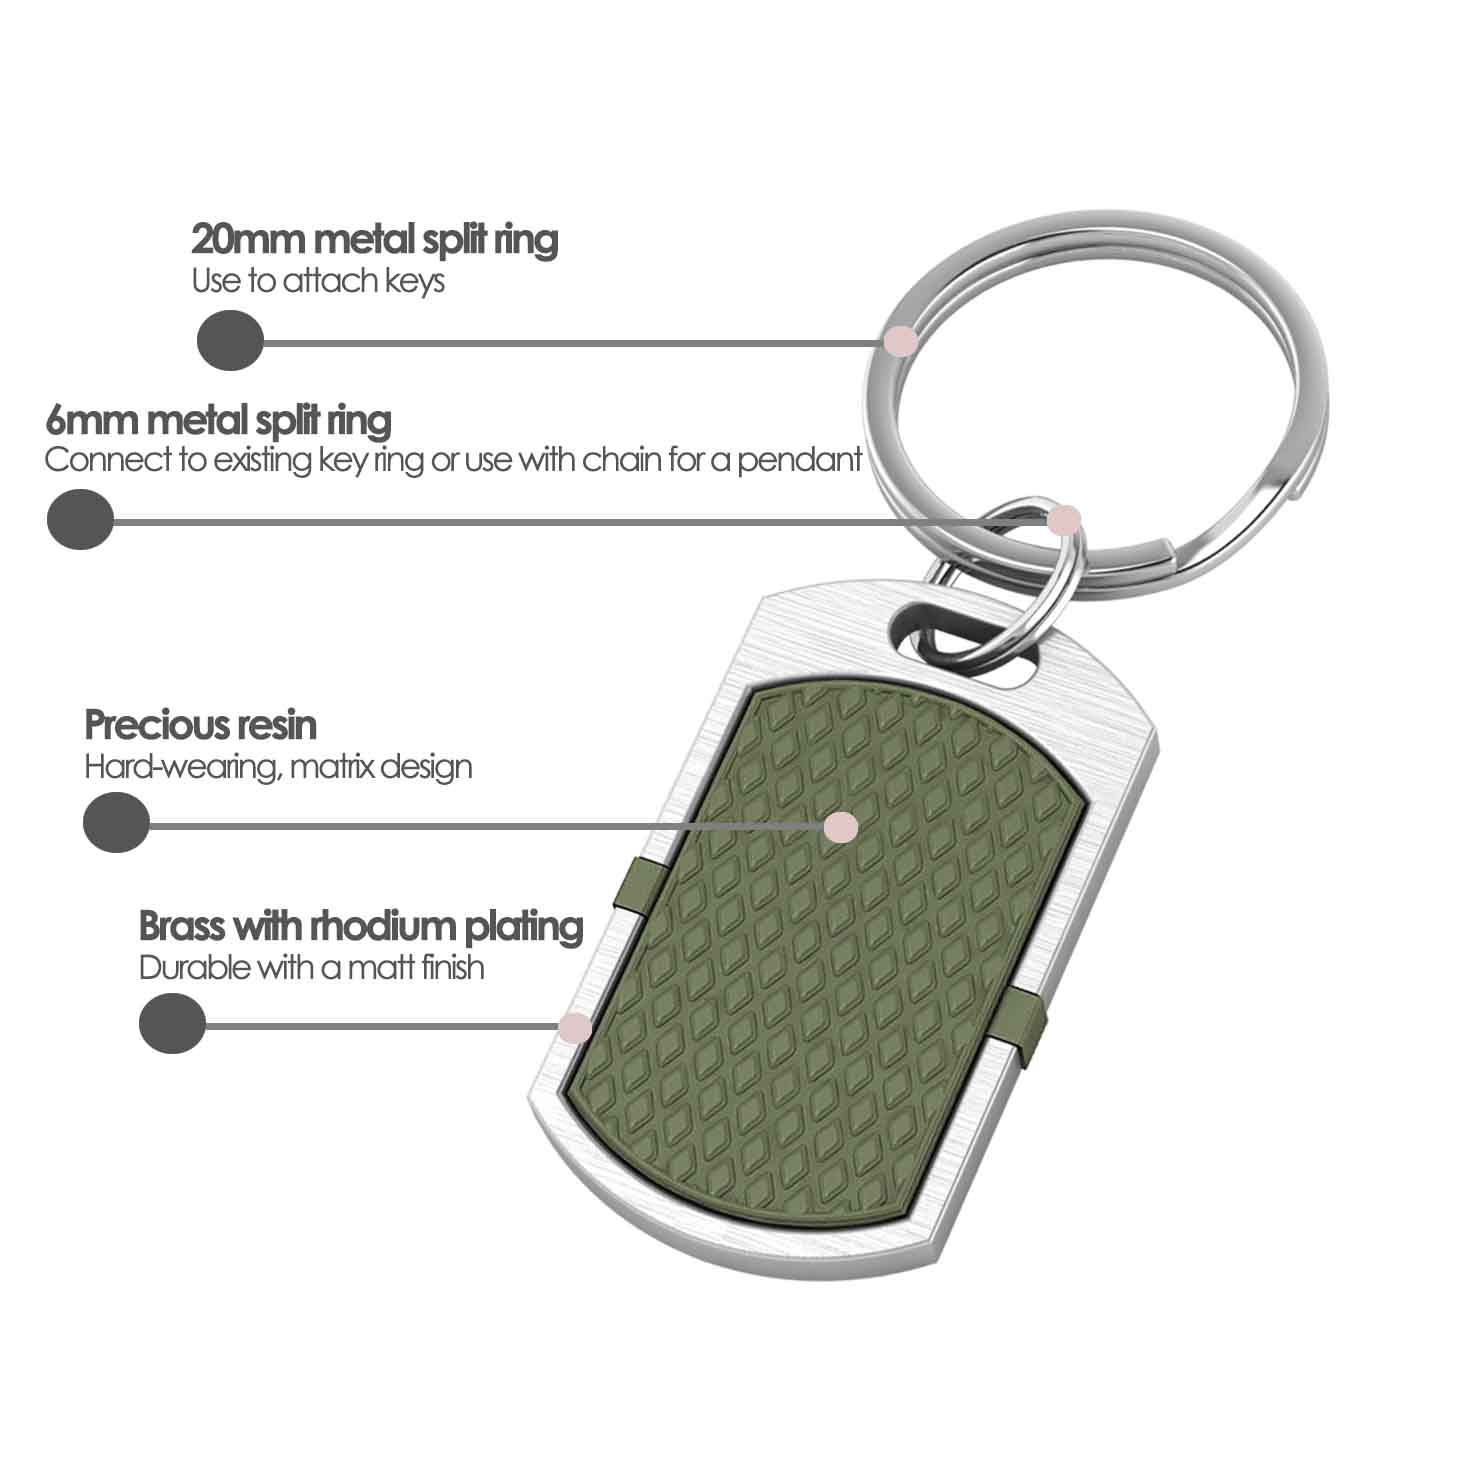 New York contactless payment wearable key fob pendant khaki green product details specification